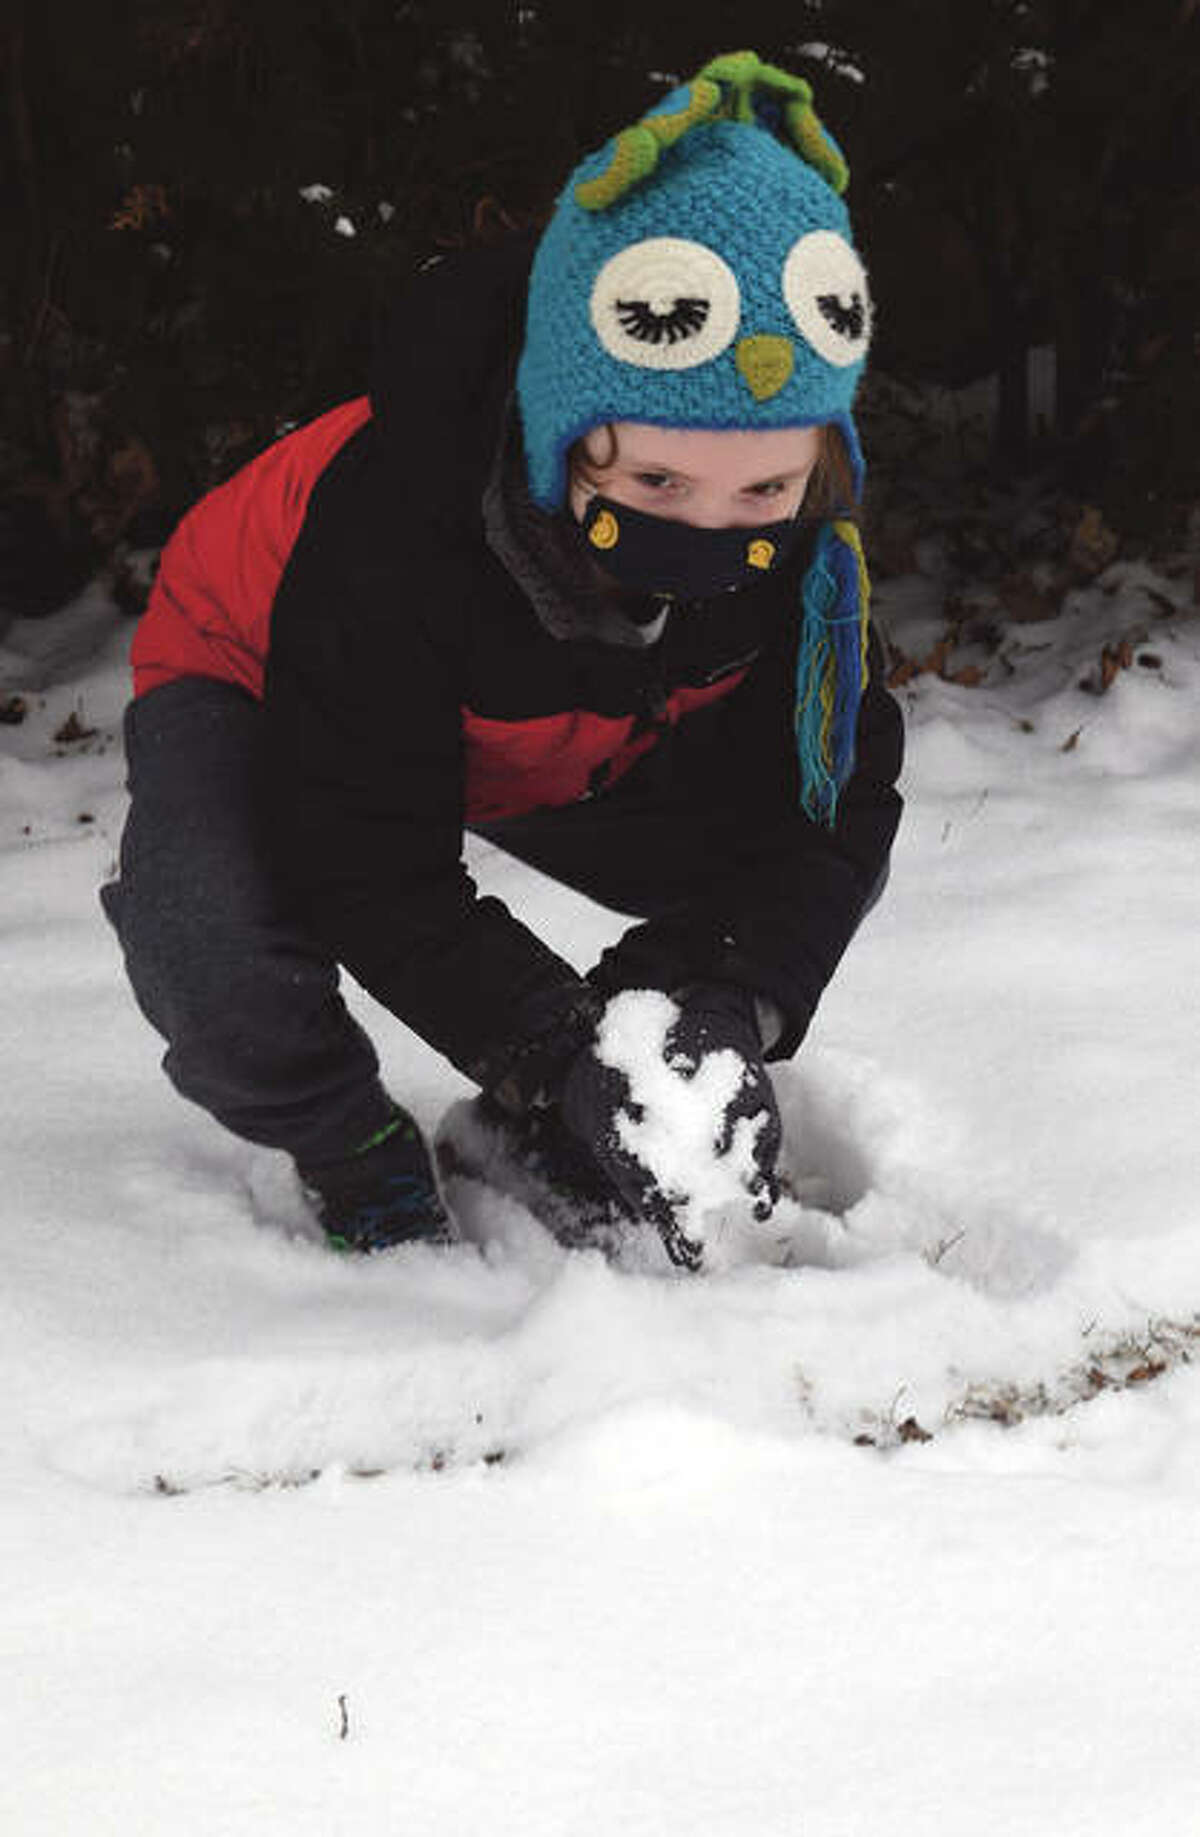 Ben Calaway-Camacho, 7, the son of Jared Calaway and Stacy Camacho of Jacksonville, makes a snowball Monday.